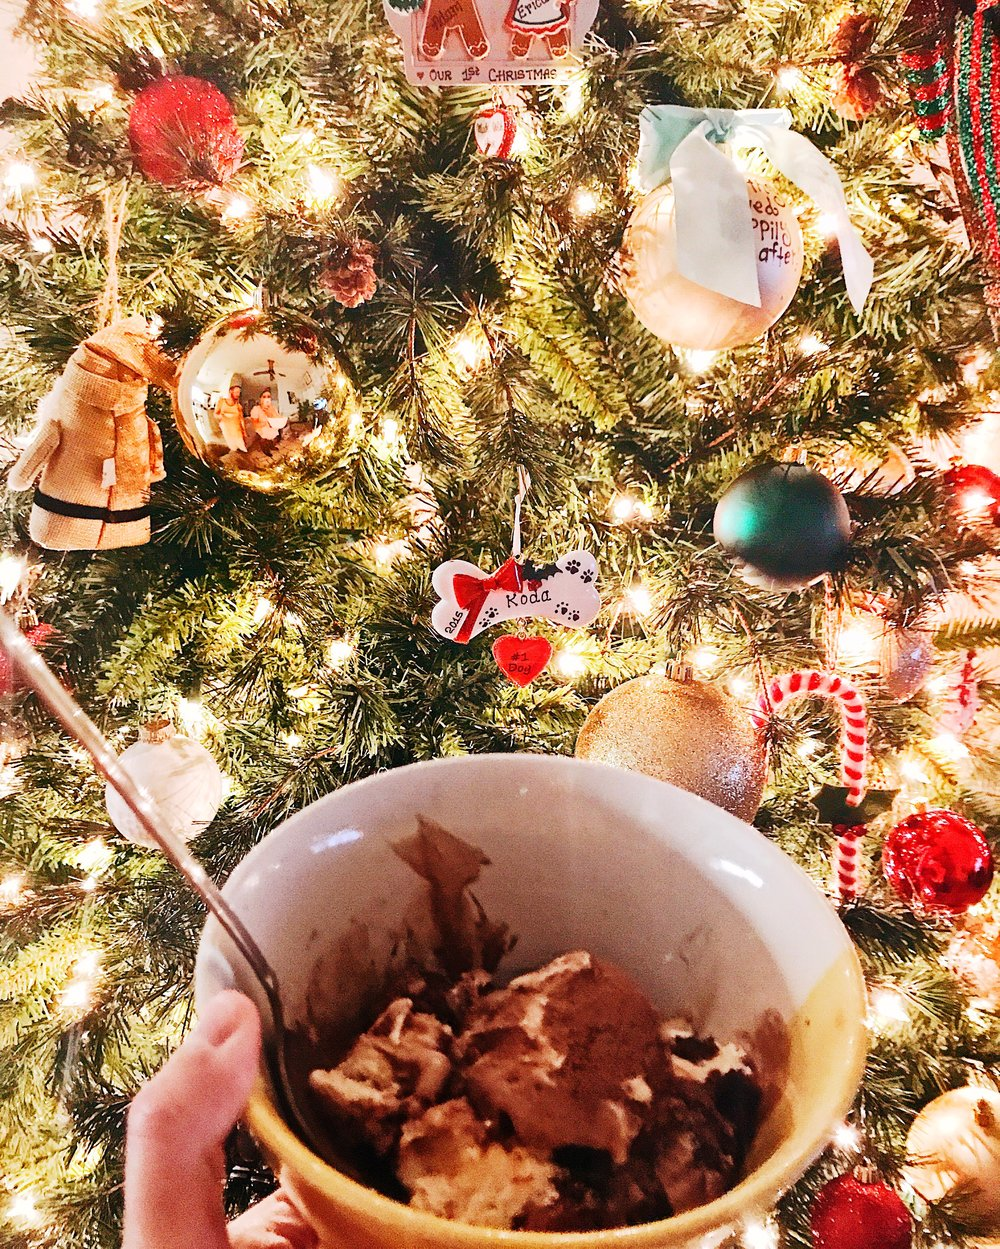 "Here I am, clutching a bowl of ""S'mores"" Ben & Jerry's ice cream, protesting the end of Christmas. #LittleSantaHasTurnedHisBackInDisapproval #LessFattio #MoreCardio #ItsHardio #MyNYResolutionIsToNotGiveAShitAboutNYResolutions #IDontBelieveInThemAnyway"